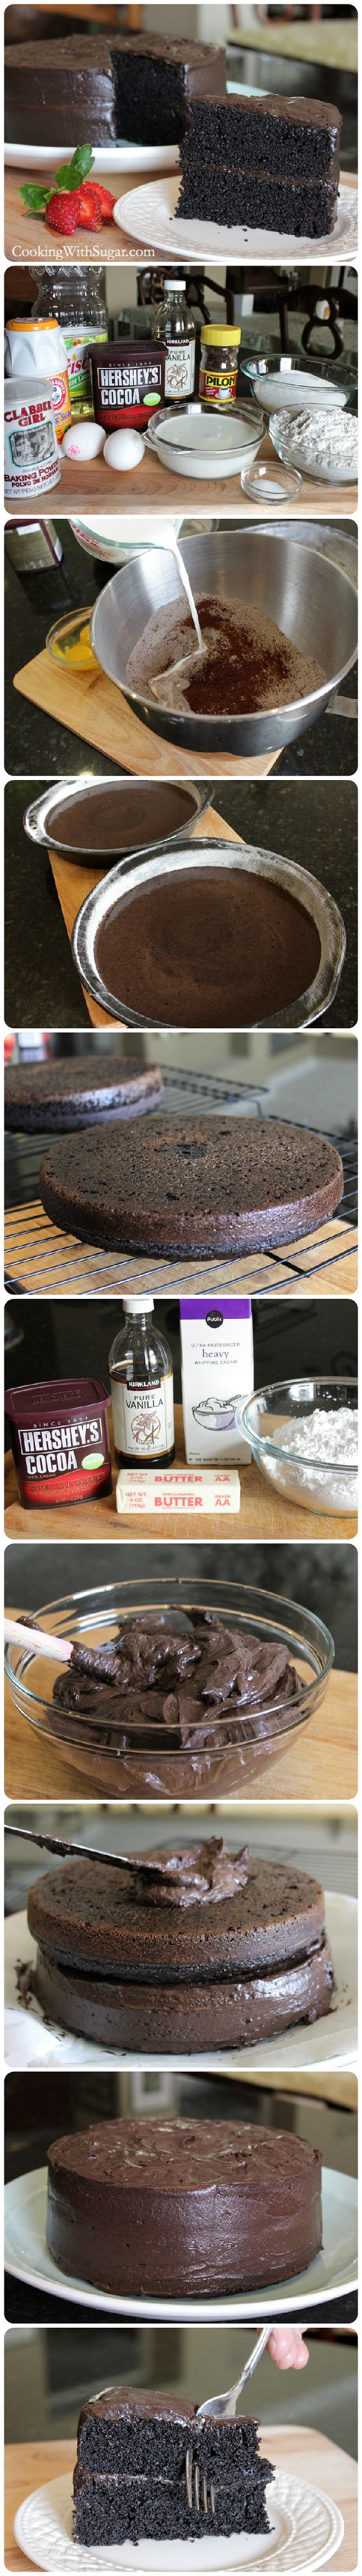 "Homemade Delicious ""Especially Dark"" Chocolate Cake – The Best Cake Recipe from Hershey's-Step by Step..."